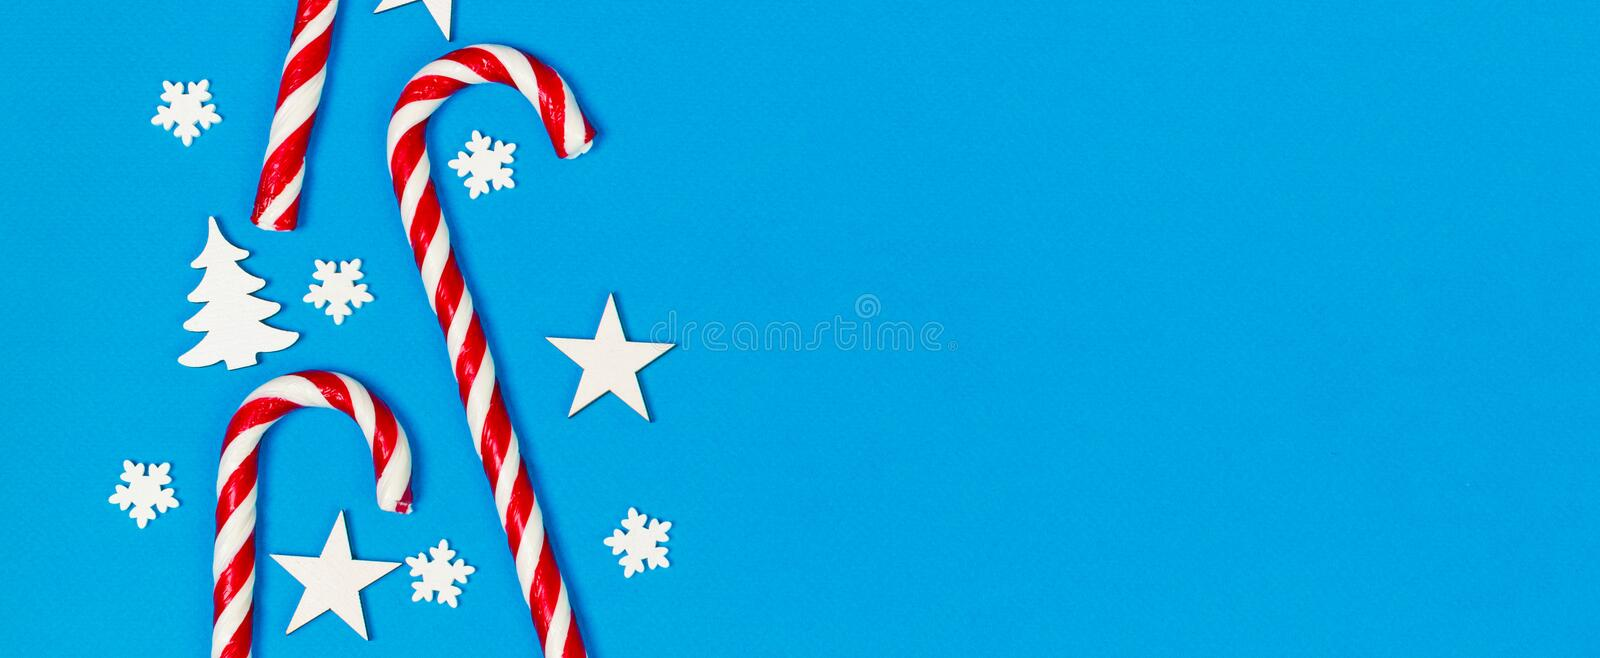 Christmas candy cane lied evenly in row on blue background with decorative snowflake and star. Flat lay and top view royalty free stock images